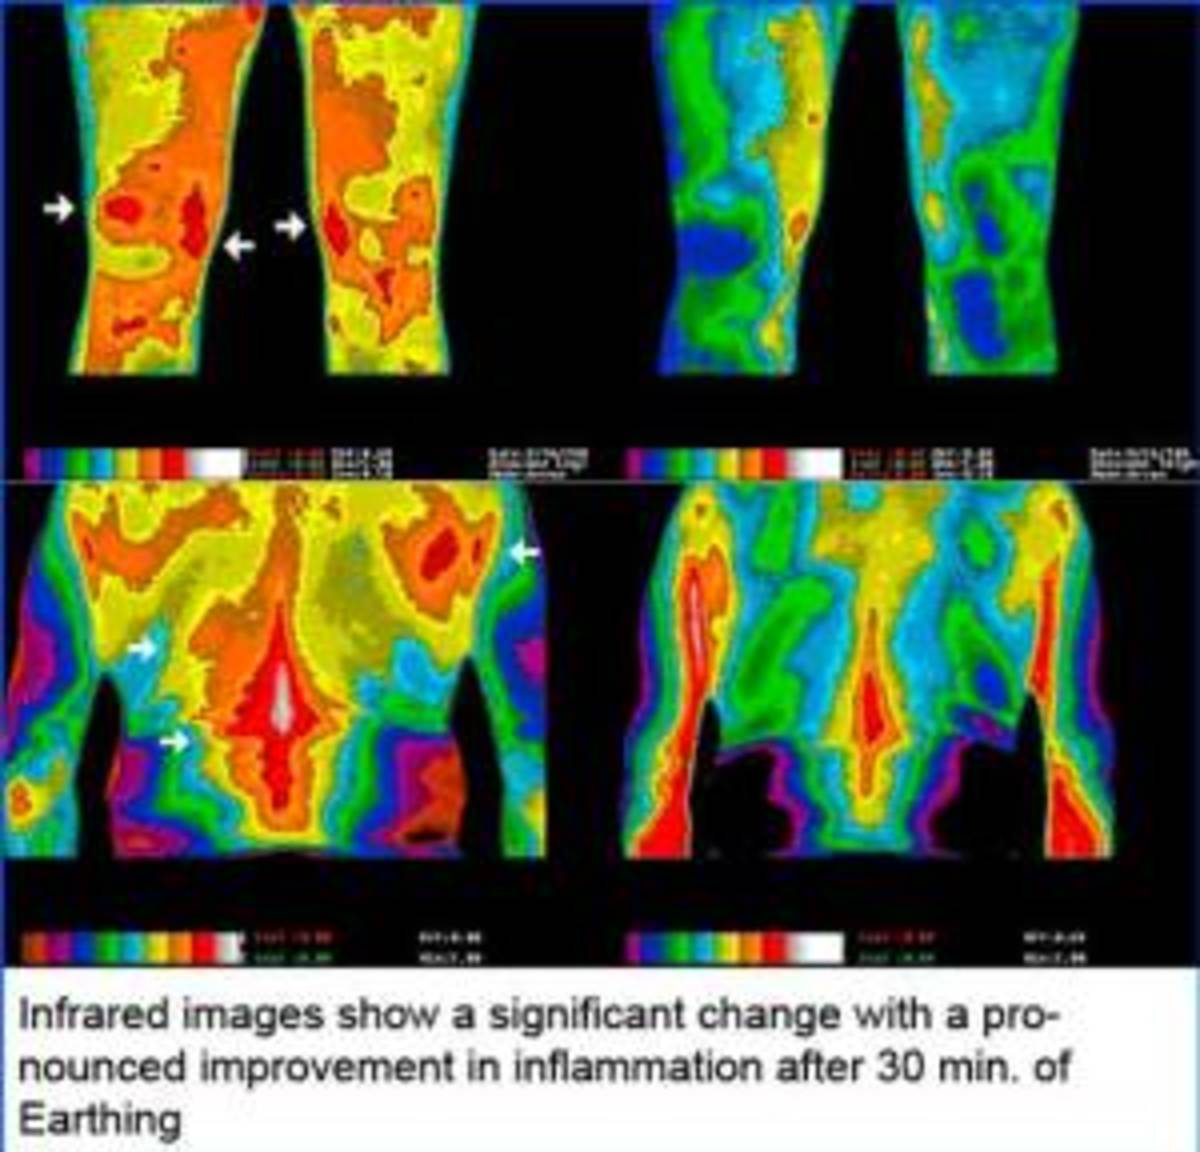 Infrared images show a significant change with a pronounced improvement of inflammation after 30 minutes of earthing.